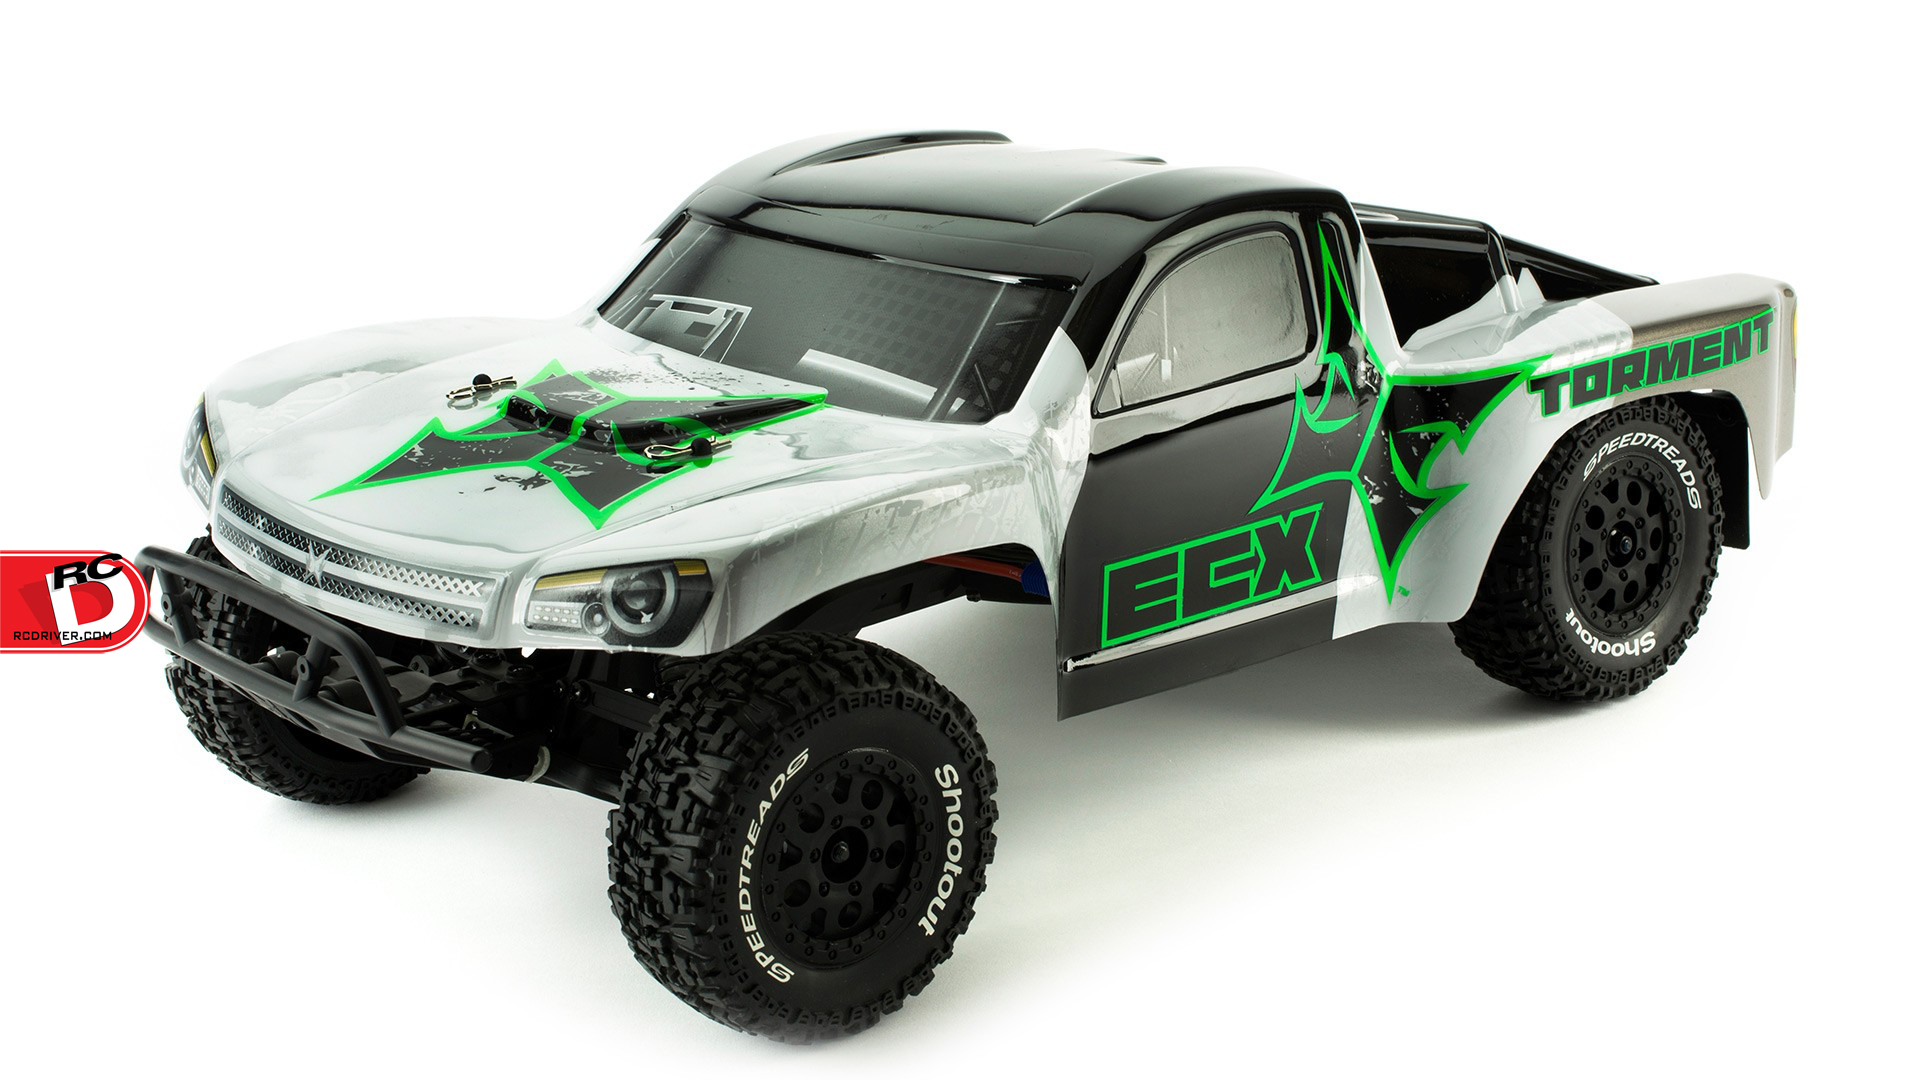 best rc car in the world with Ecx 2wd Vehicles Get The 2 1 Treatment on Watch moreover Female Body Painting Photos moreover 3056 Tuning Peugeot 207 likewise Asus Republic Of Gamers G750 Gaming Laptop also W Motors Fenyr Supersport Rear Side.